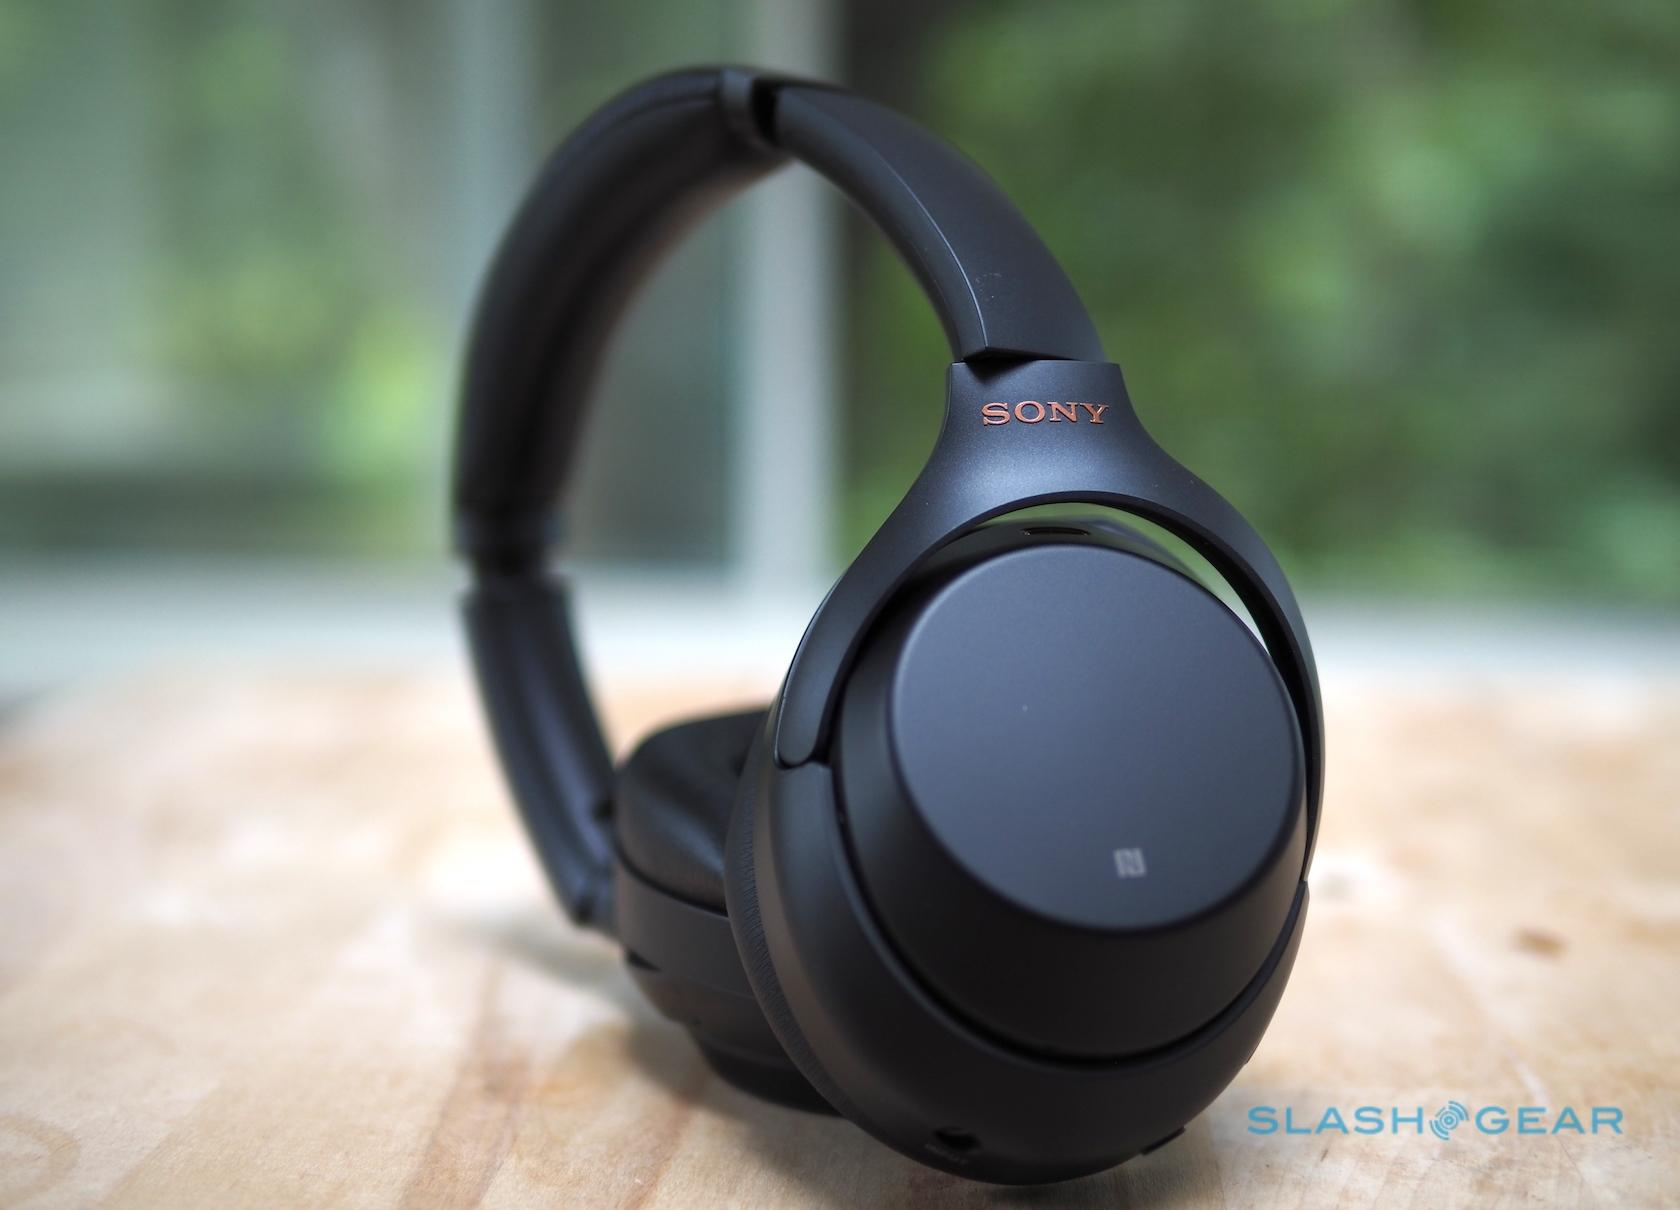 Sony WH-1000XM3 Review: King of noise-canceling headphones